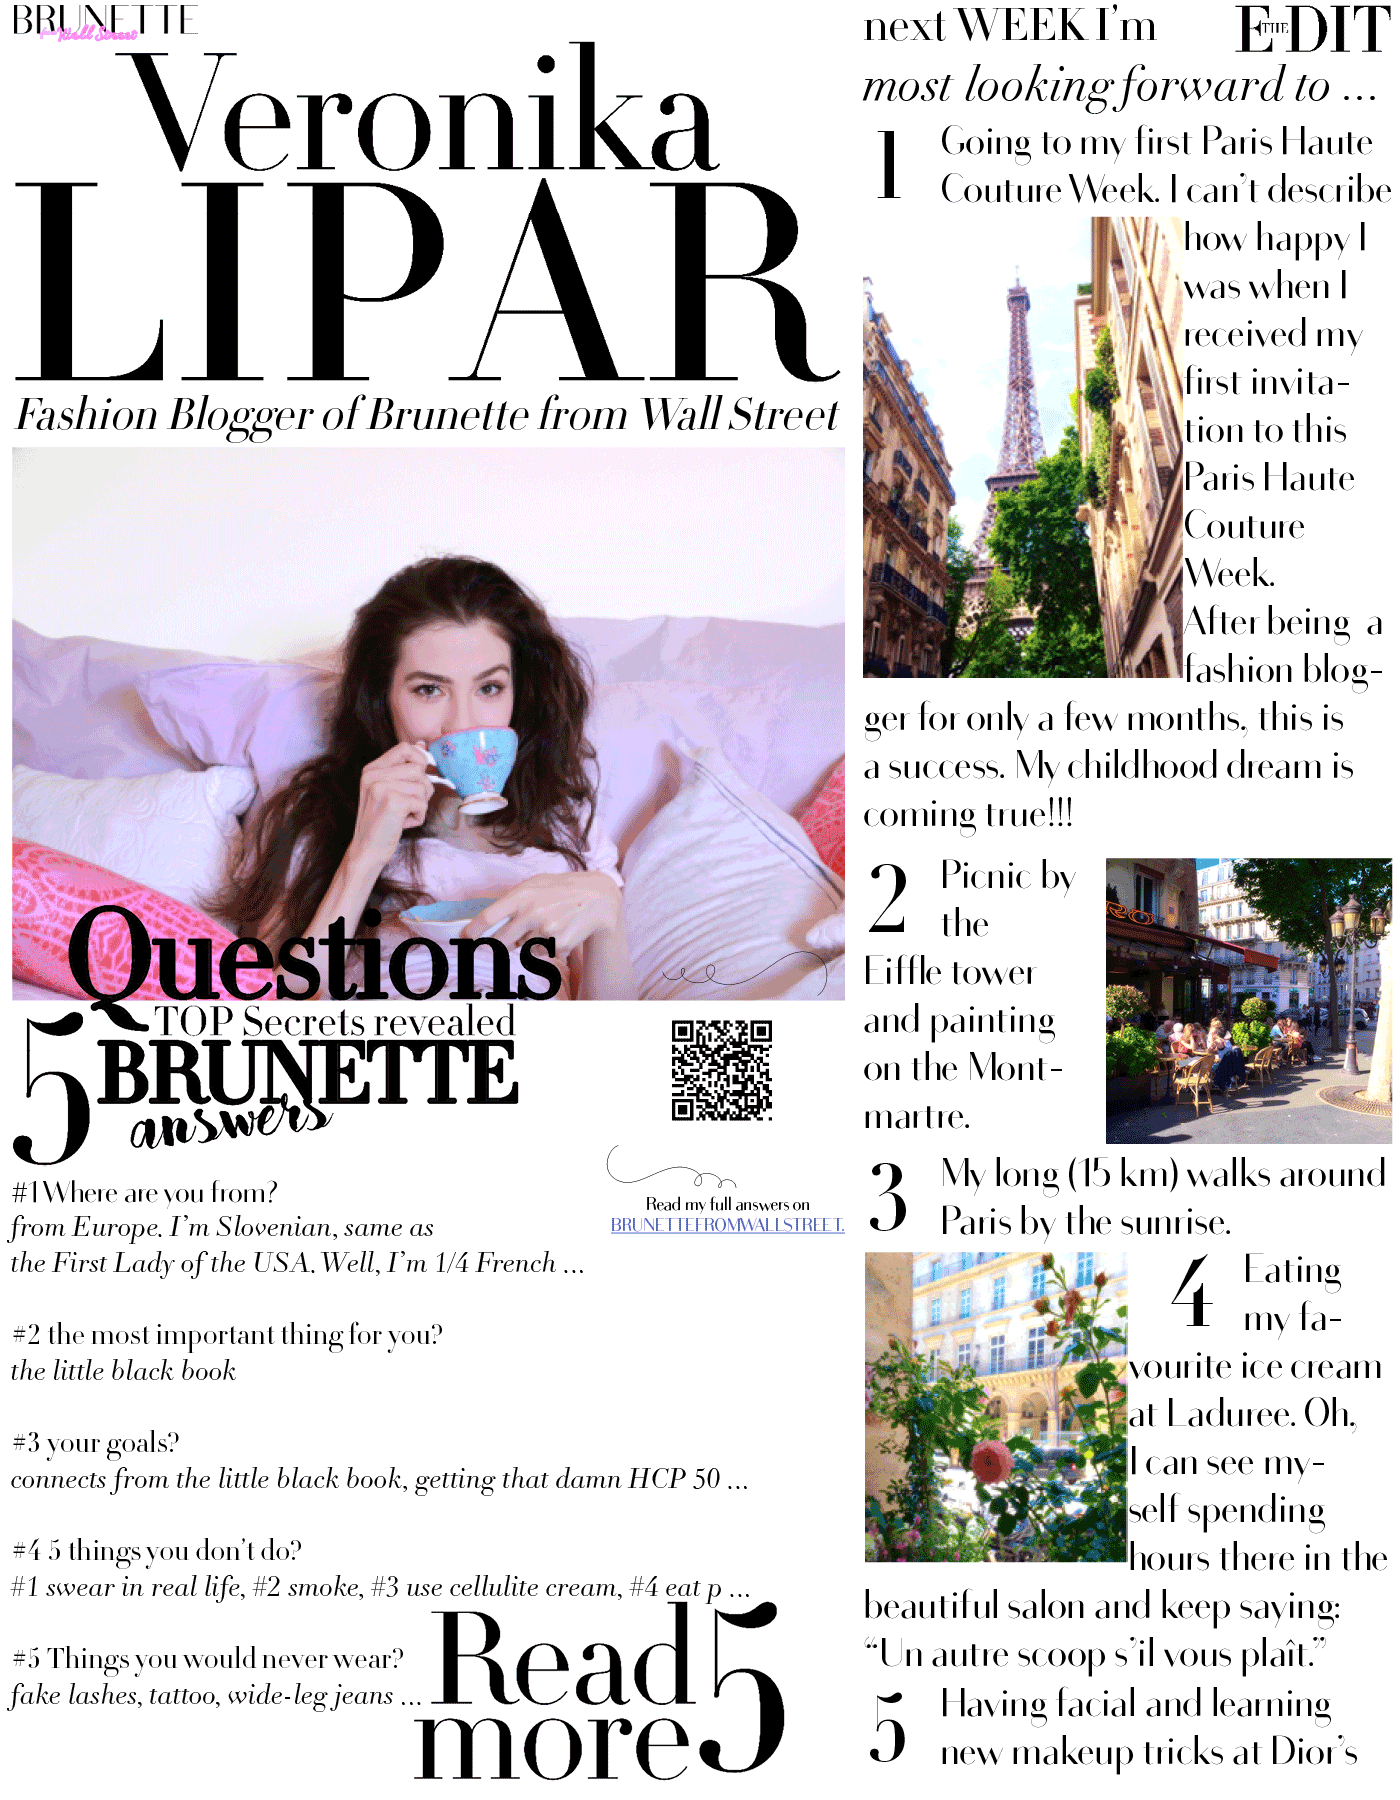 Fashion blogger Veronika Lipar of Brunette From Wall Street answering 5 questions about her and sharing things she is looking forward most during the Paris Haute Couture Week